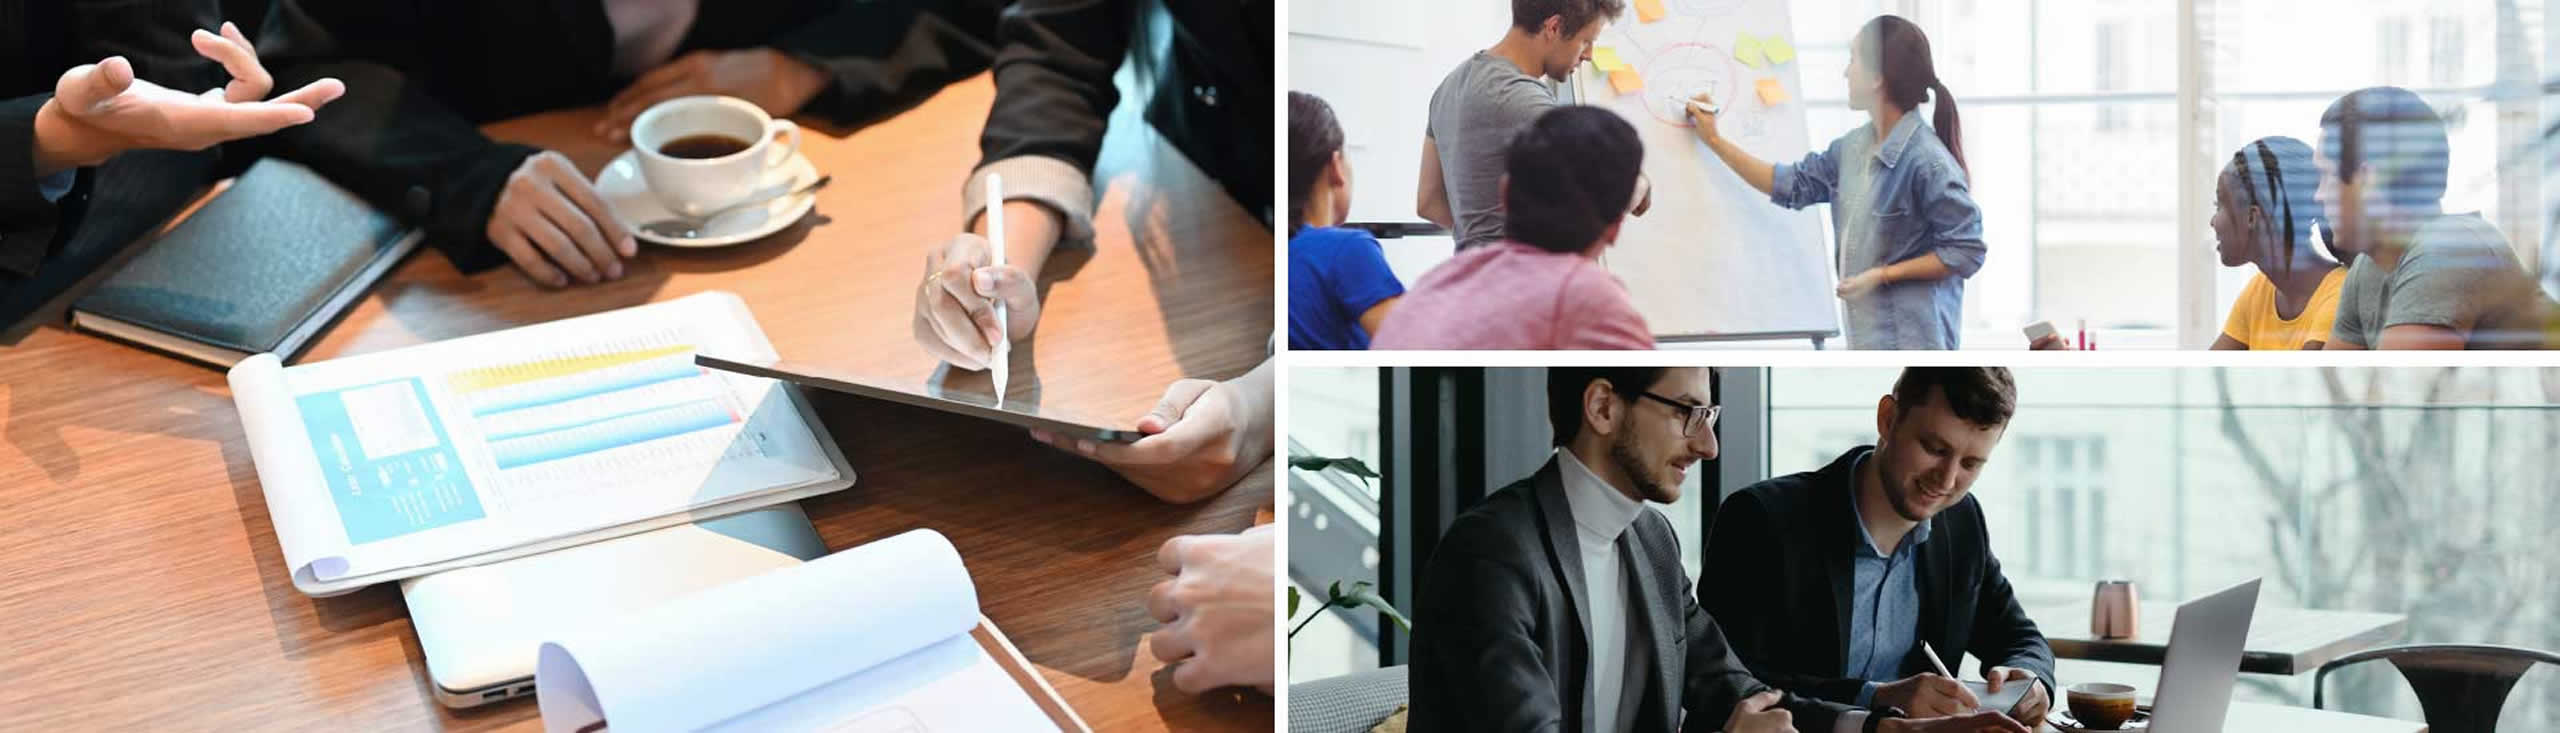 Three images of business executives collaborating and discussing projects and reports.